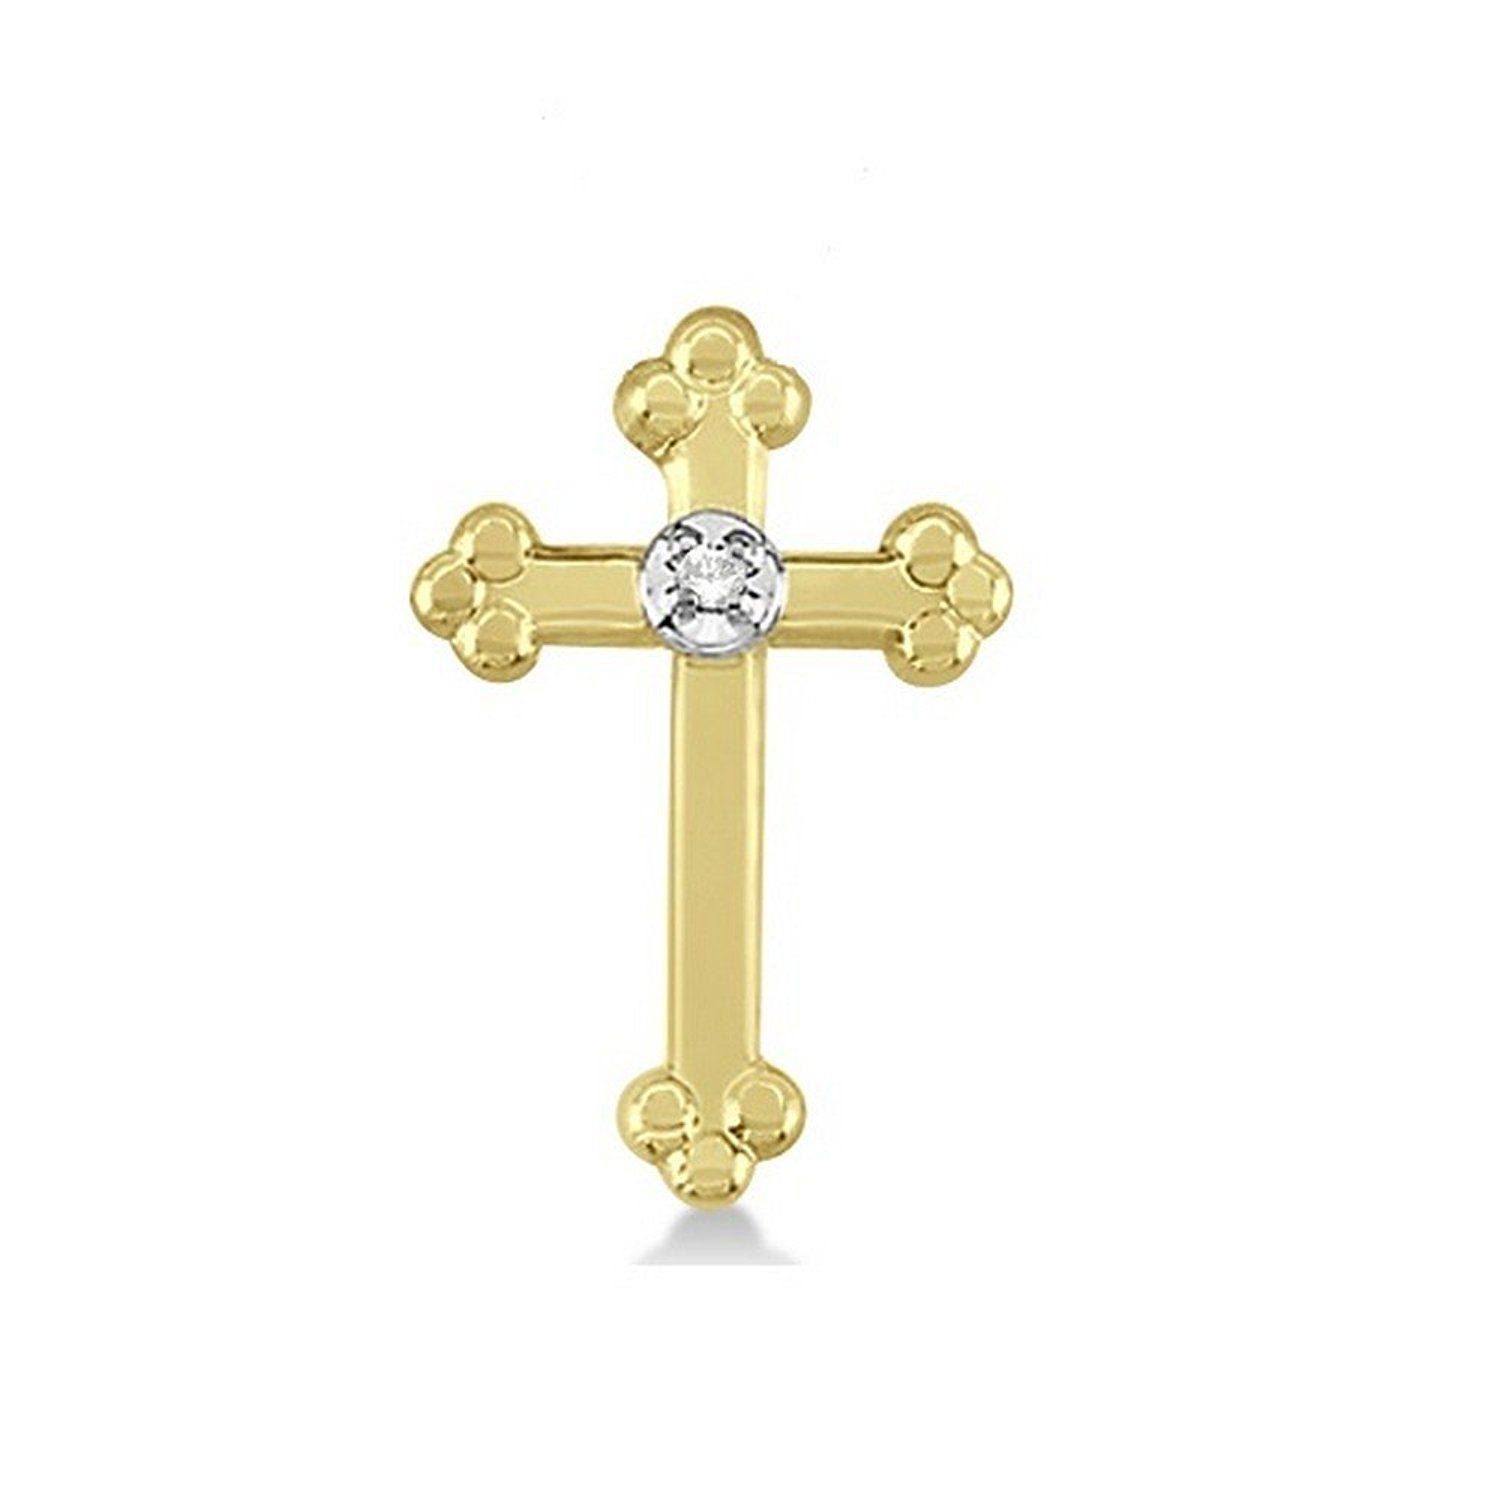 14k Gold Women's Diamond Cross Lapel Brooch Pin in Plain Metal -- You can get additional details at the image link.